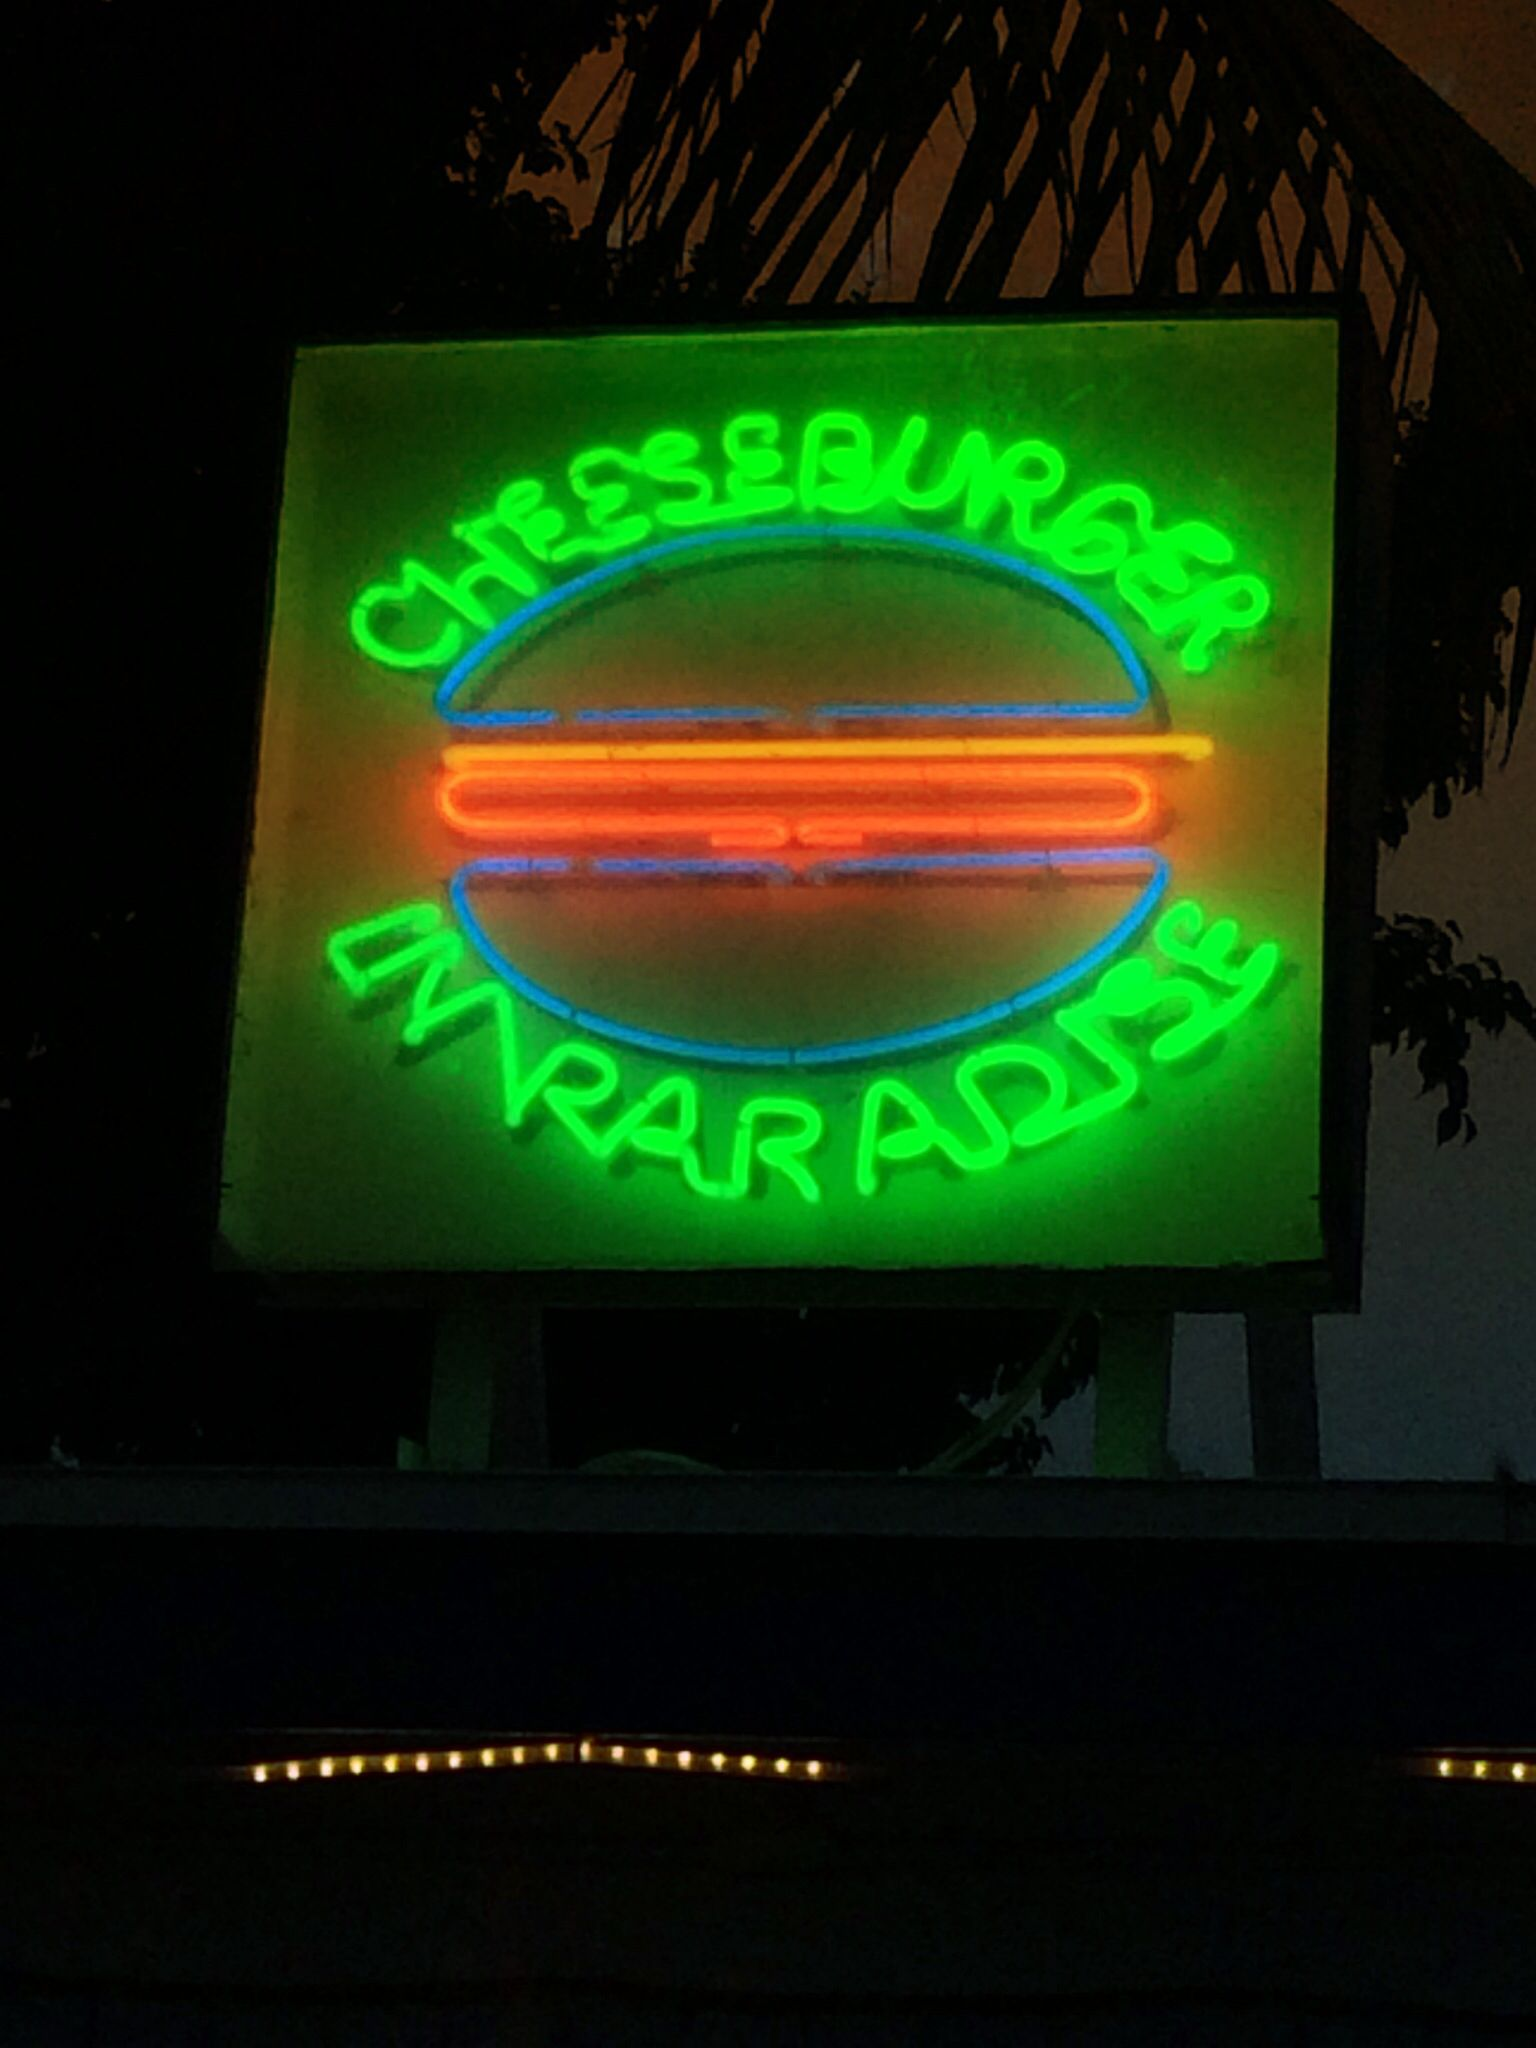 This place in St. Croix is the original...NO affiliation with Jimmy Buffet, and the BEST cheeseburgers ever!!  #neonsigns #stcroix